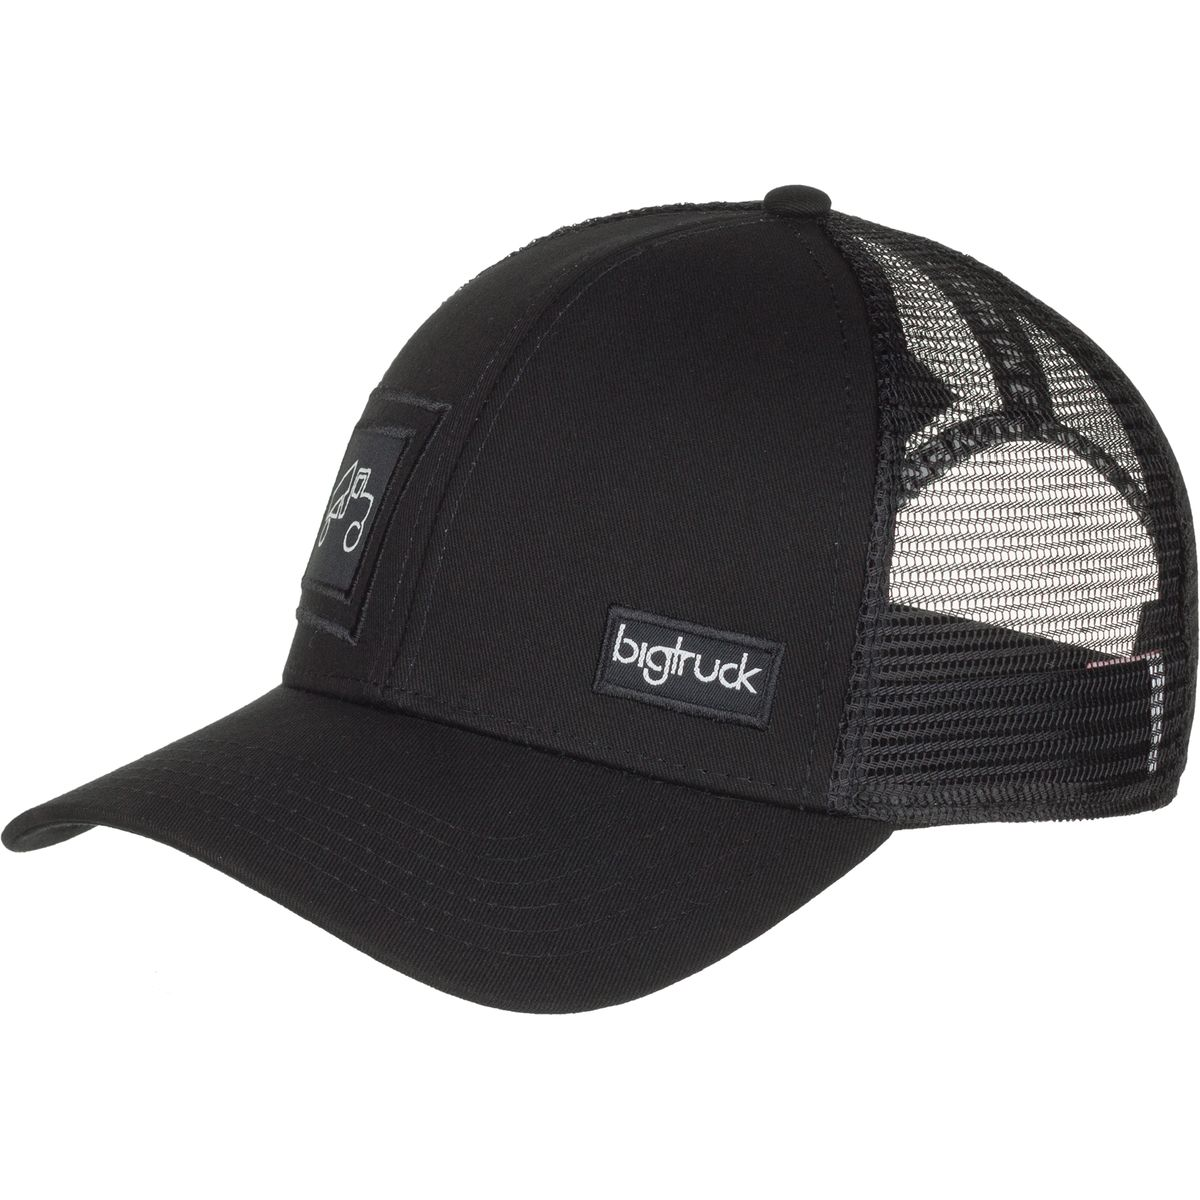 Bigtruck Brand Classic Trucker Hat Black Black One Size